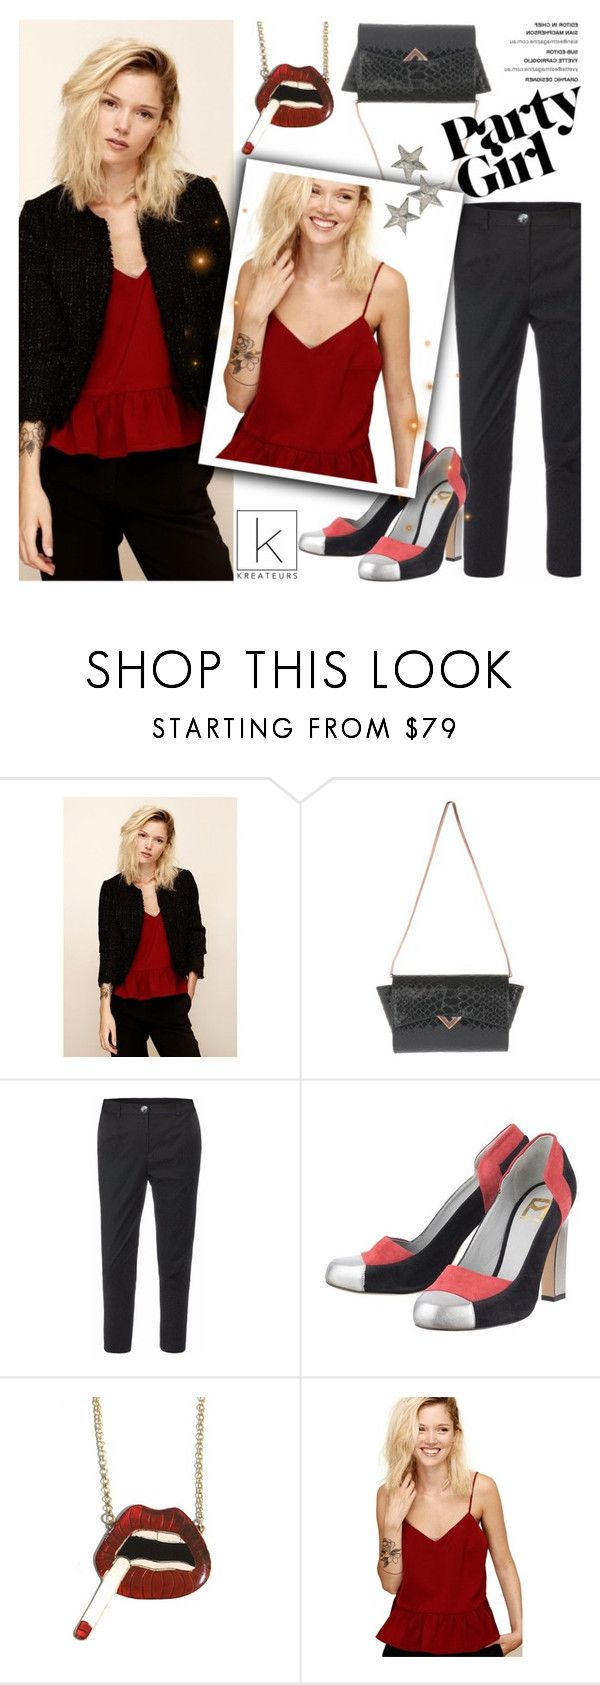 """""""Party girl!"""" by kreateurs ❤ liked on Polyvore featuring Devastee and kreauters"""